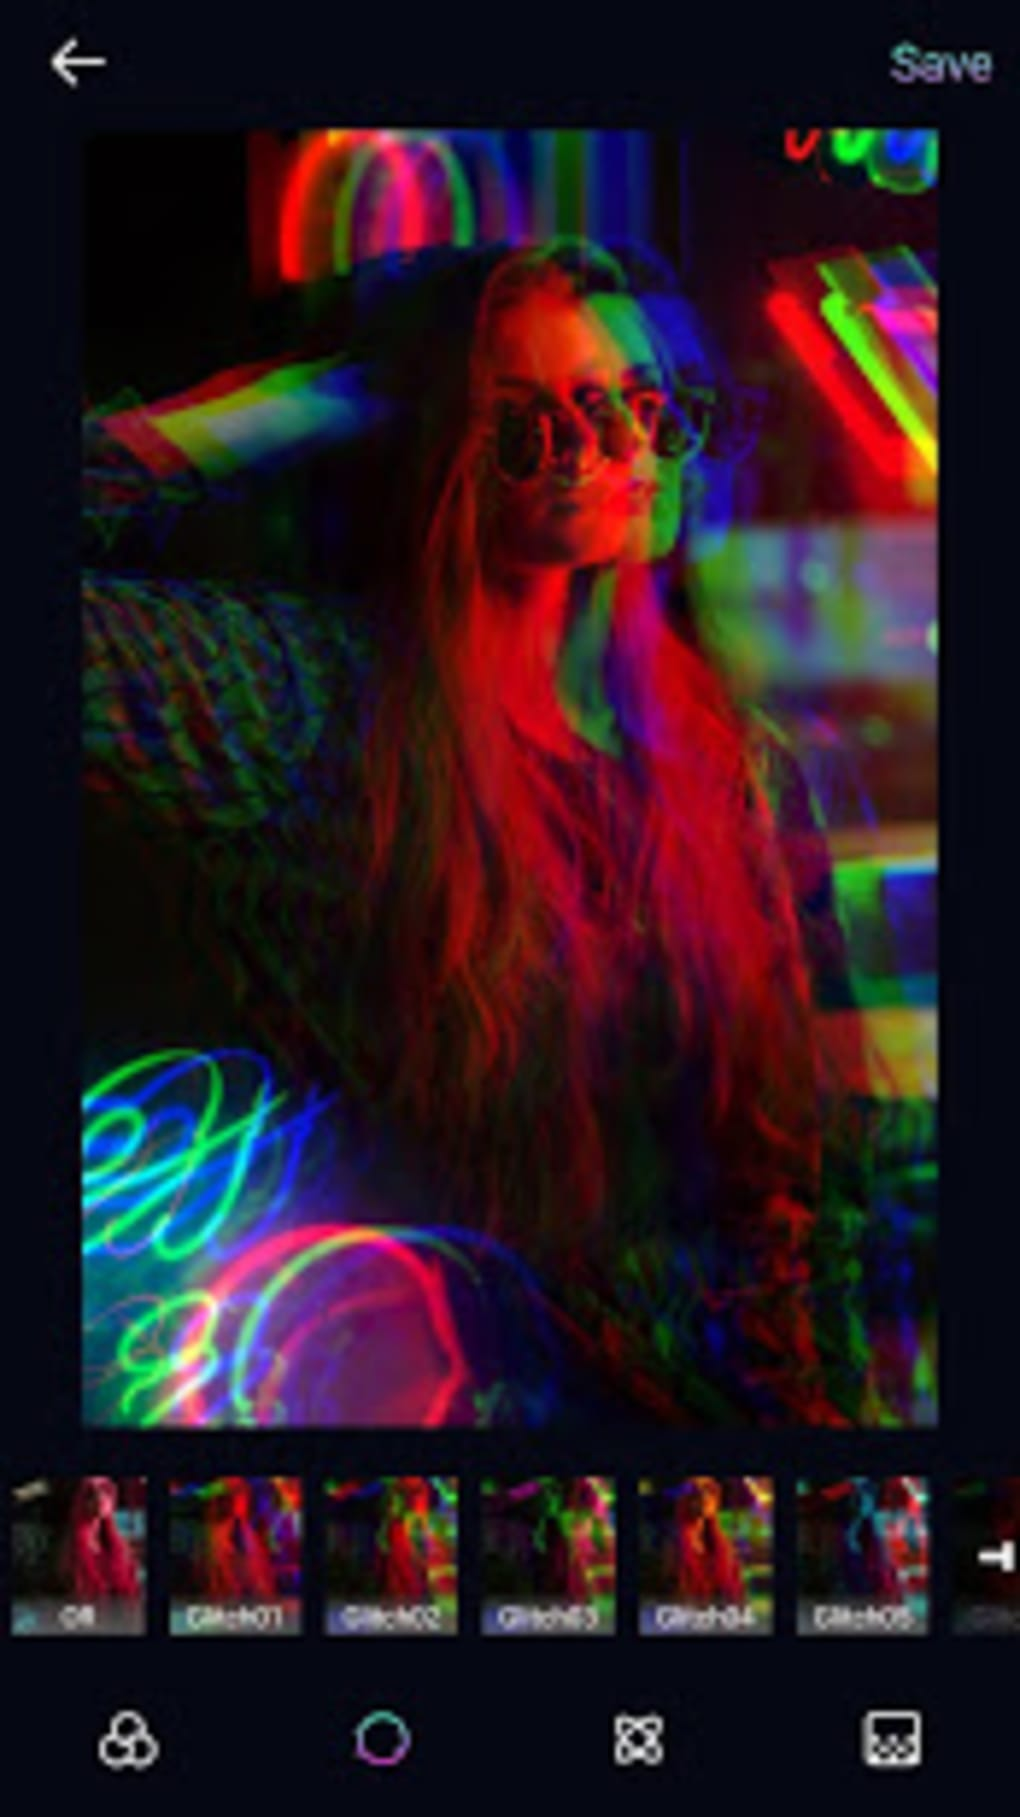 Glitch Photo Editor - Glitch Video VHS Vaporwave for Android